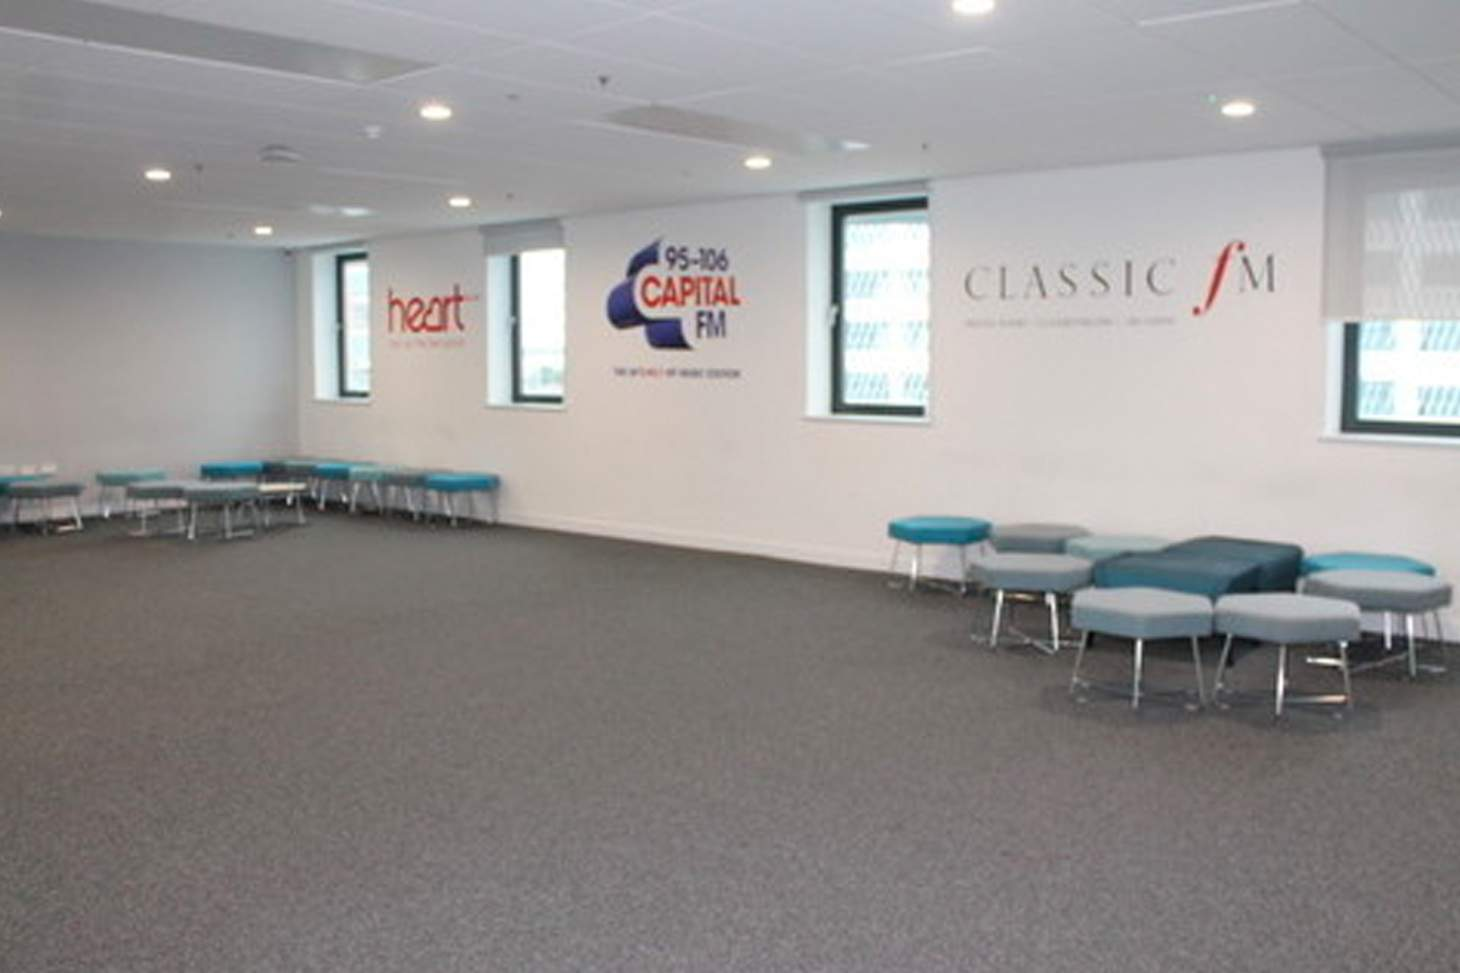 Global Academy, Hayes Meeting room space hire